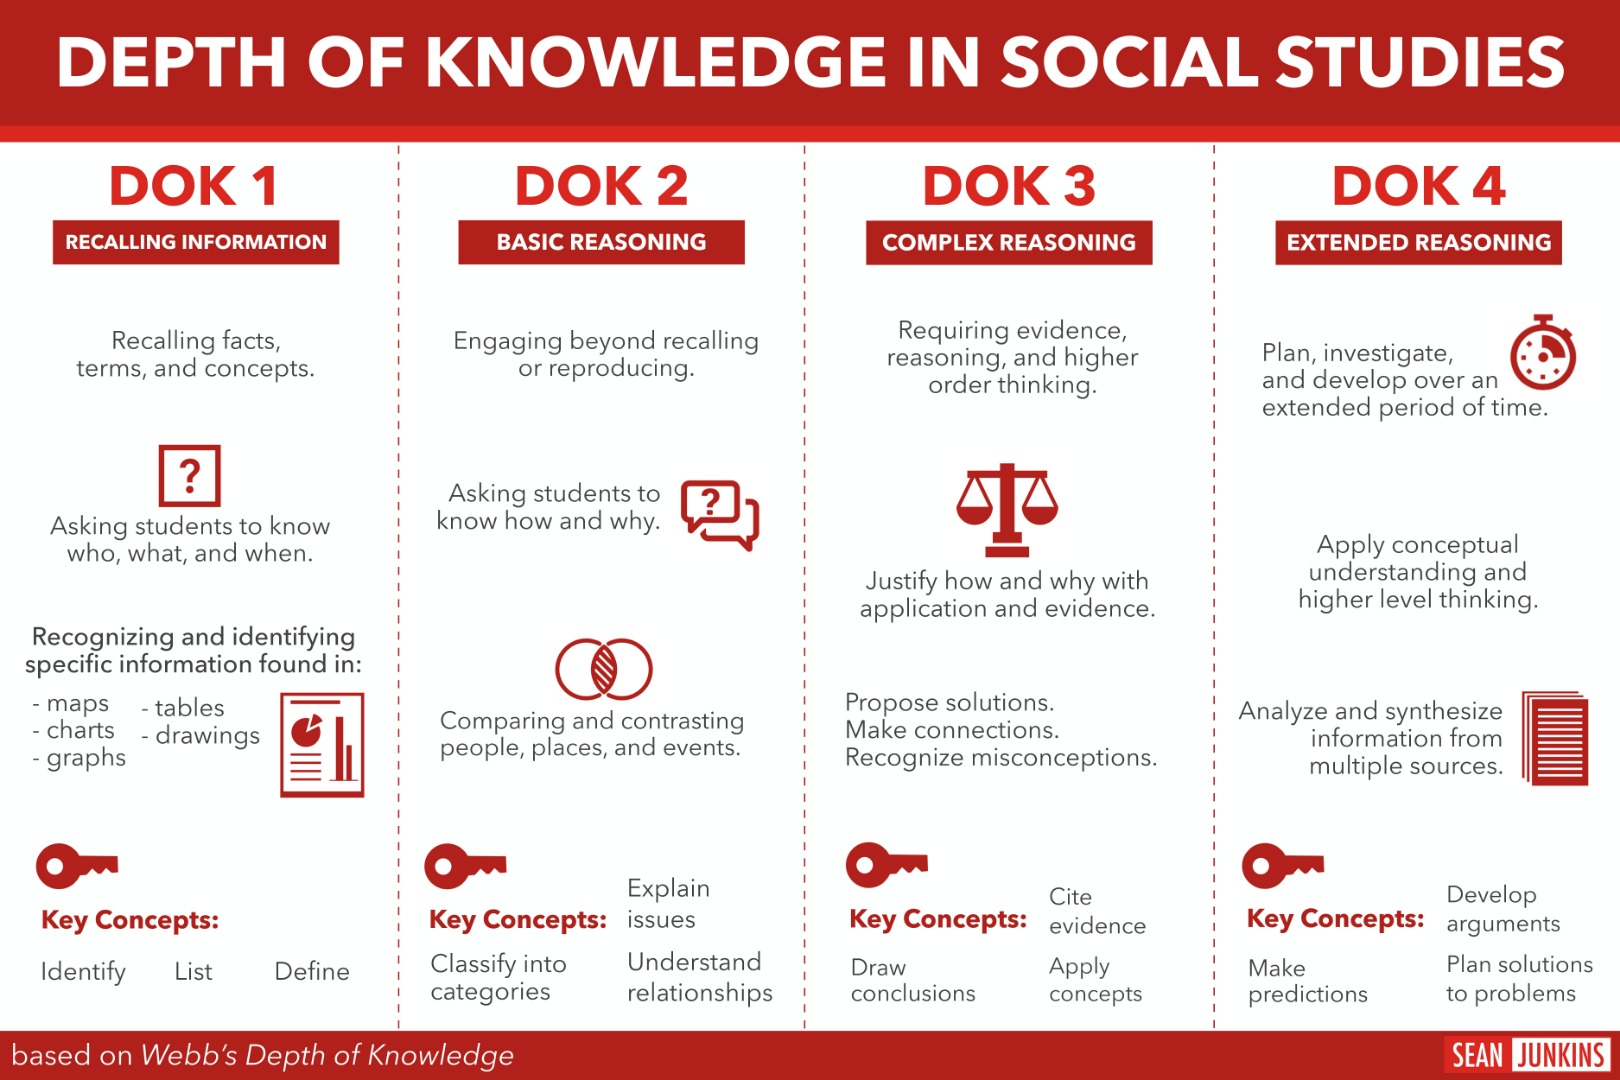 DOK in Social Studies